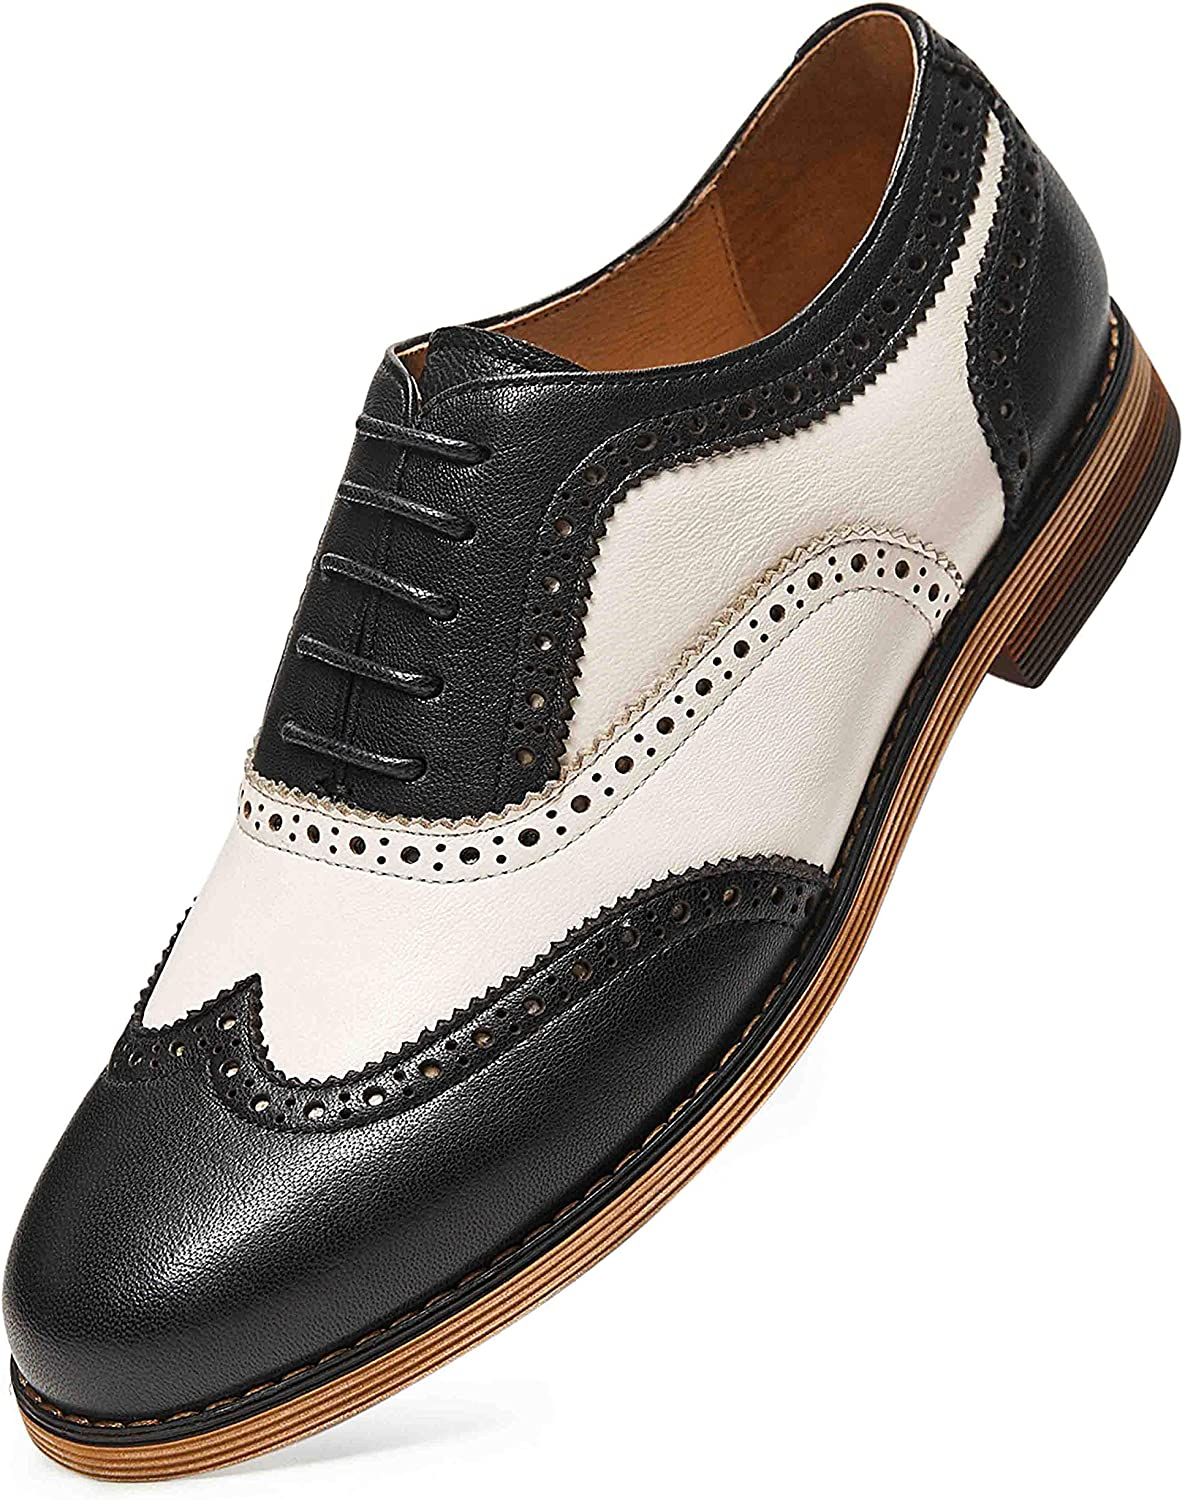 Leather Dress Formal Shoes for Ladies